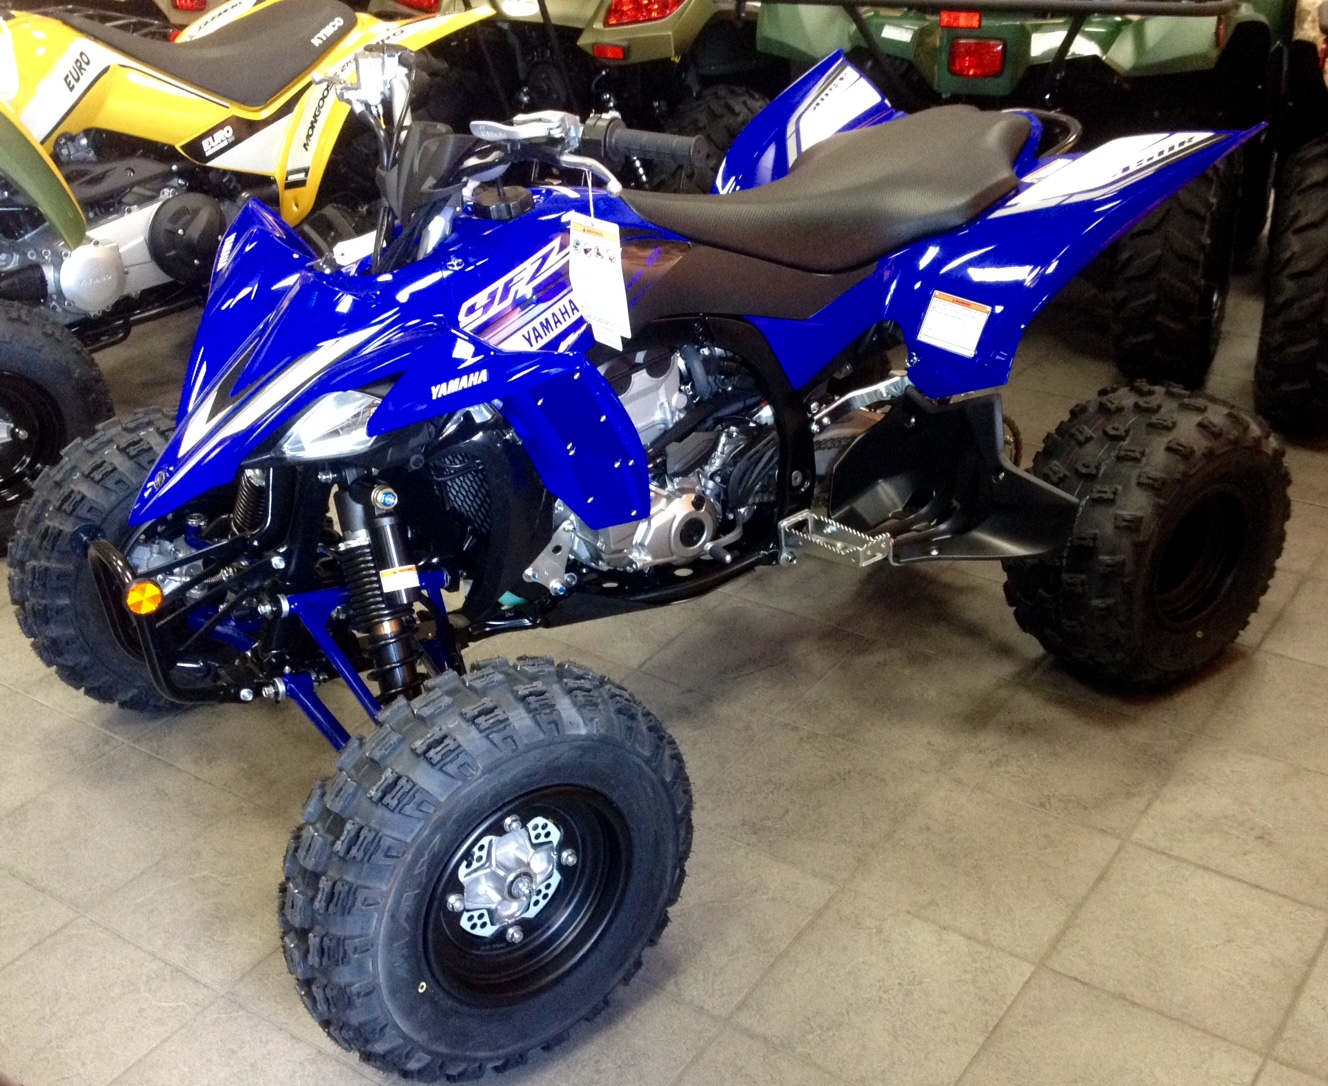 New YAMAHA ATV UTV Street Bike Off-Road Sport Scooter For Sale